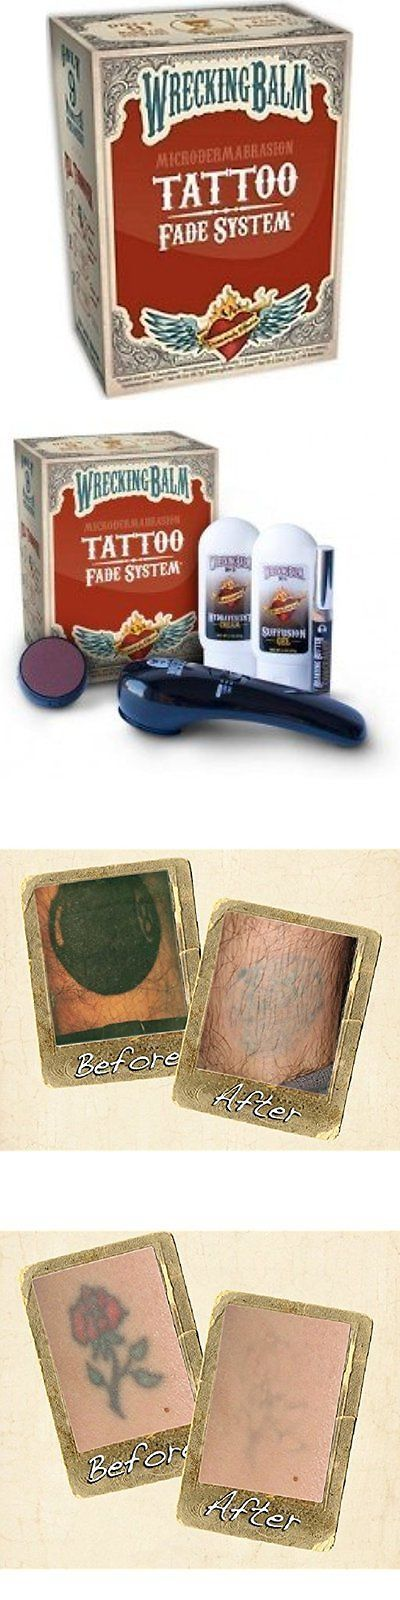 Tattoo Removal - Tattoo Removal Machines: Wrecking Aftercare Products Balm Tattoo Fade System -> BUY IT NOW ONLY: $45.49 on eBay! - Quick and Easy Natural Methods & Secrets to Eliminating the Unwanted Tattoo That You've Been Regretting for a Long Time #tattooremovalproducts